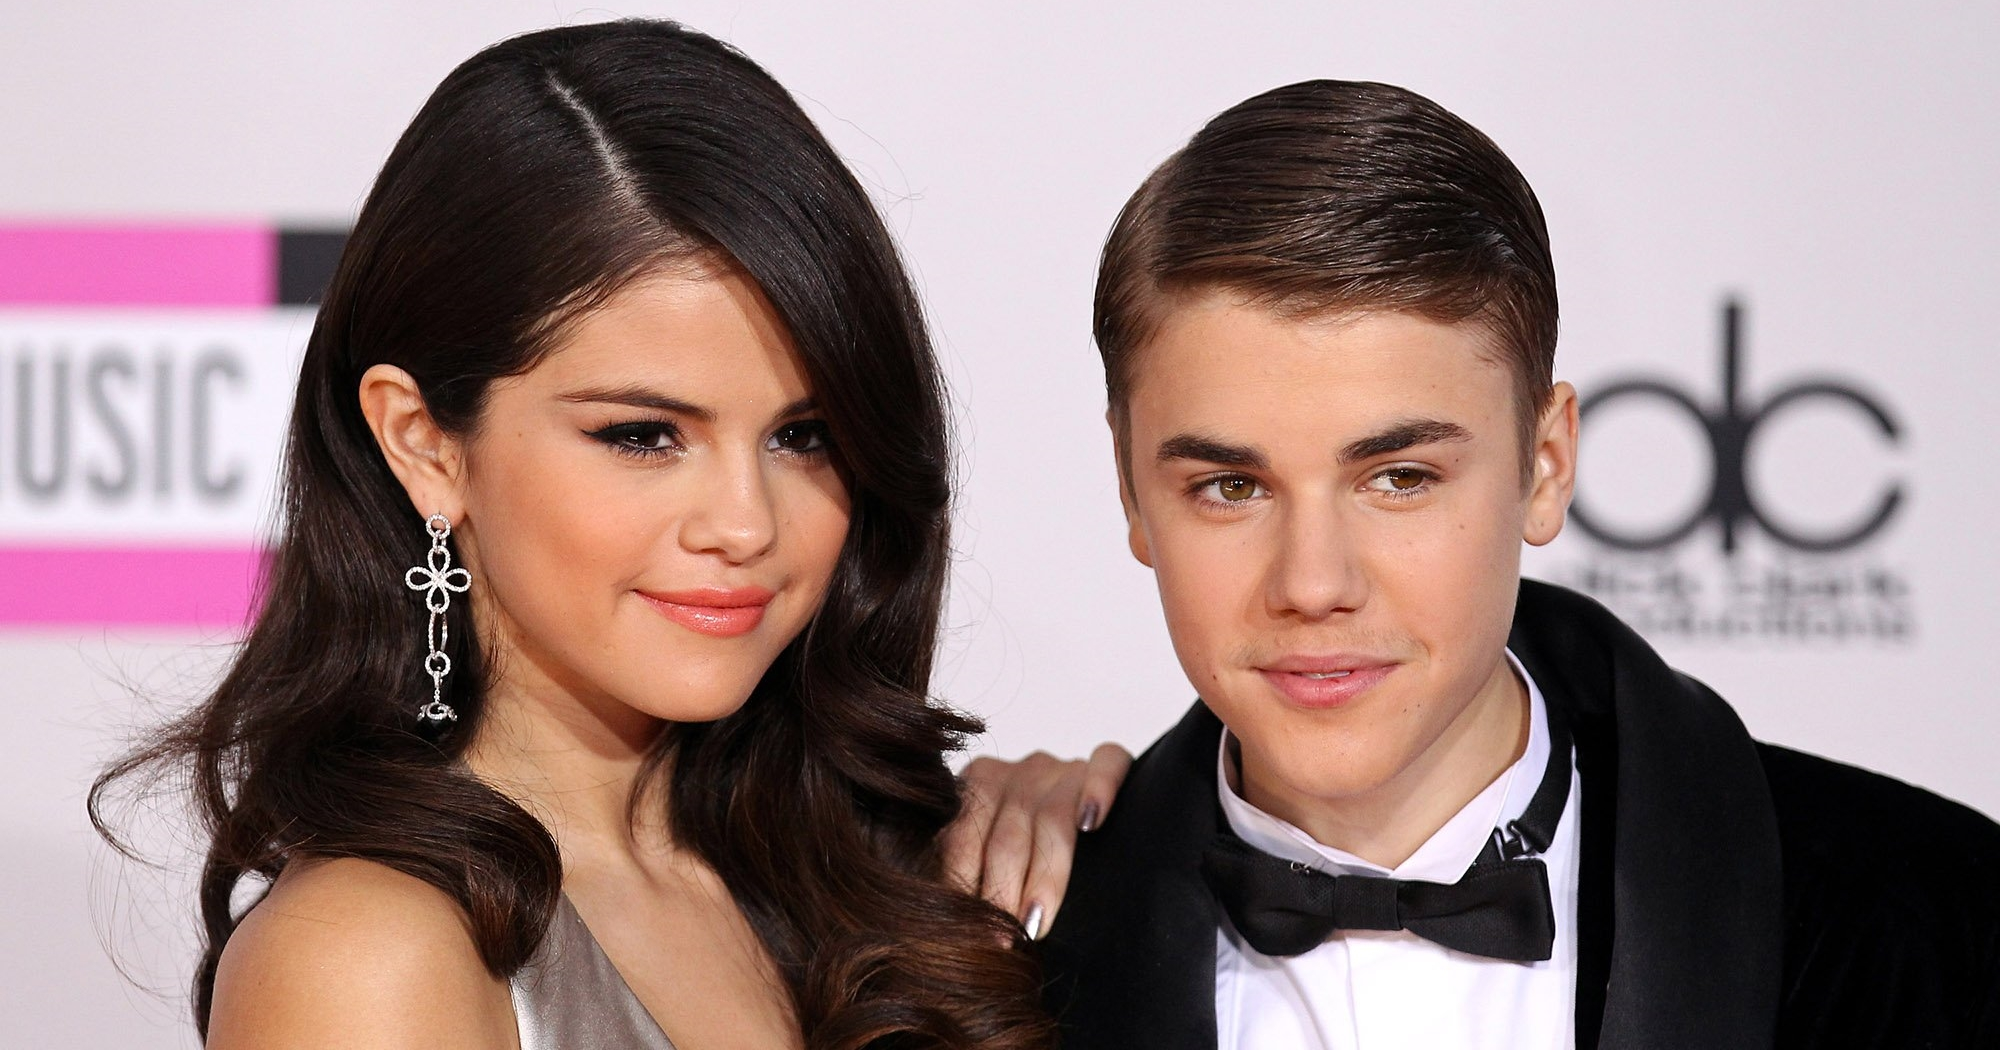 Is justin bieber still dating selena 2019